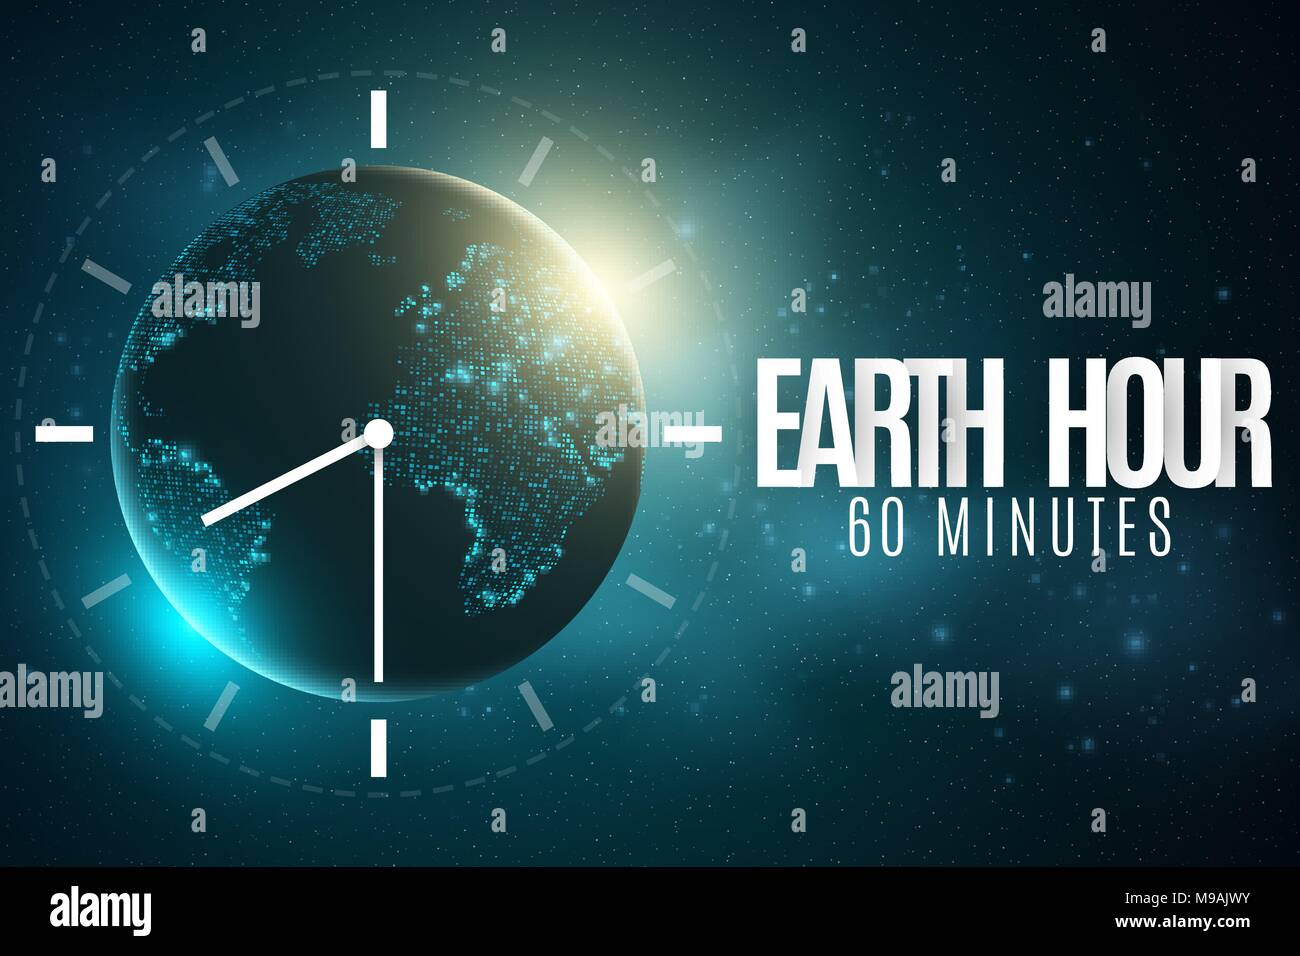 Earth hour futuristic planet earth 60 minutes without electricity earth hour futuristic planet earth 60 minutes without electricity 3d paper letters sunrise global holiday clock go abstract world map starry s gumiabroncs Image collections